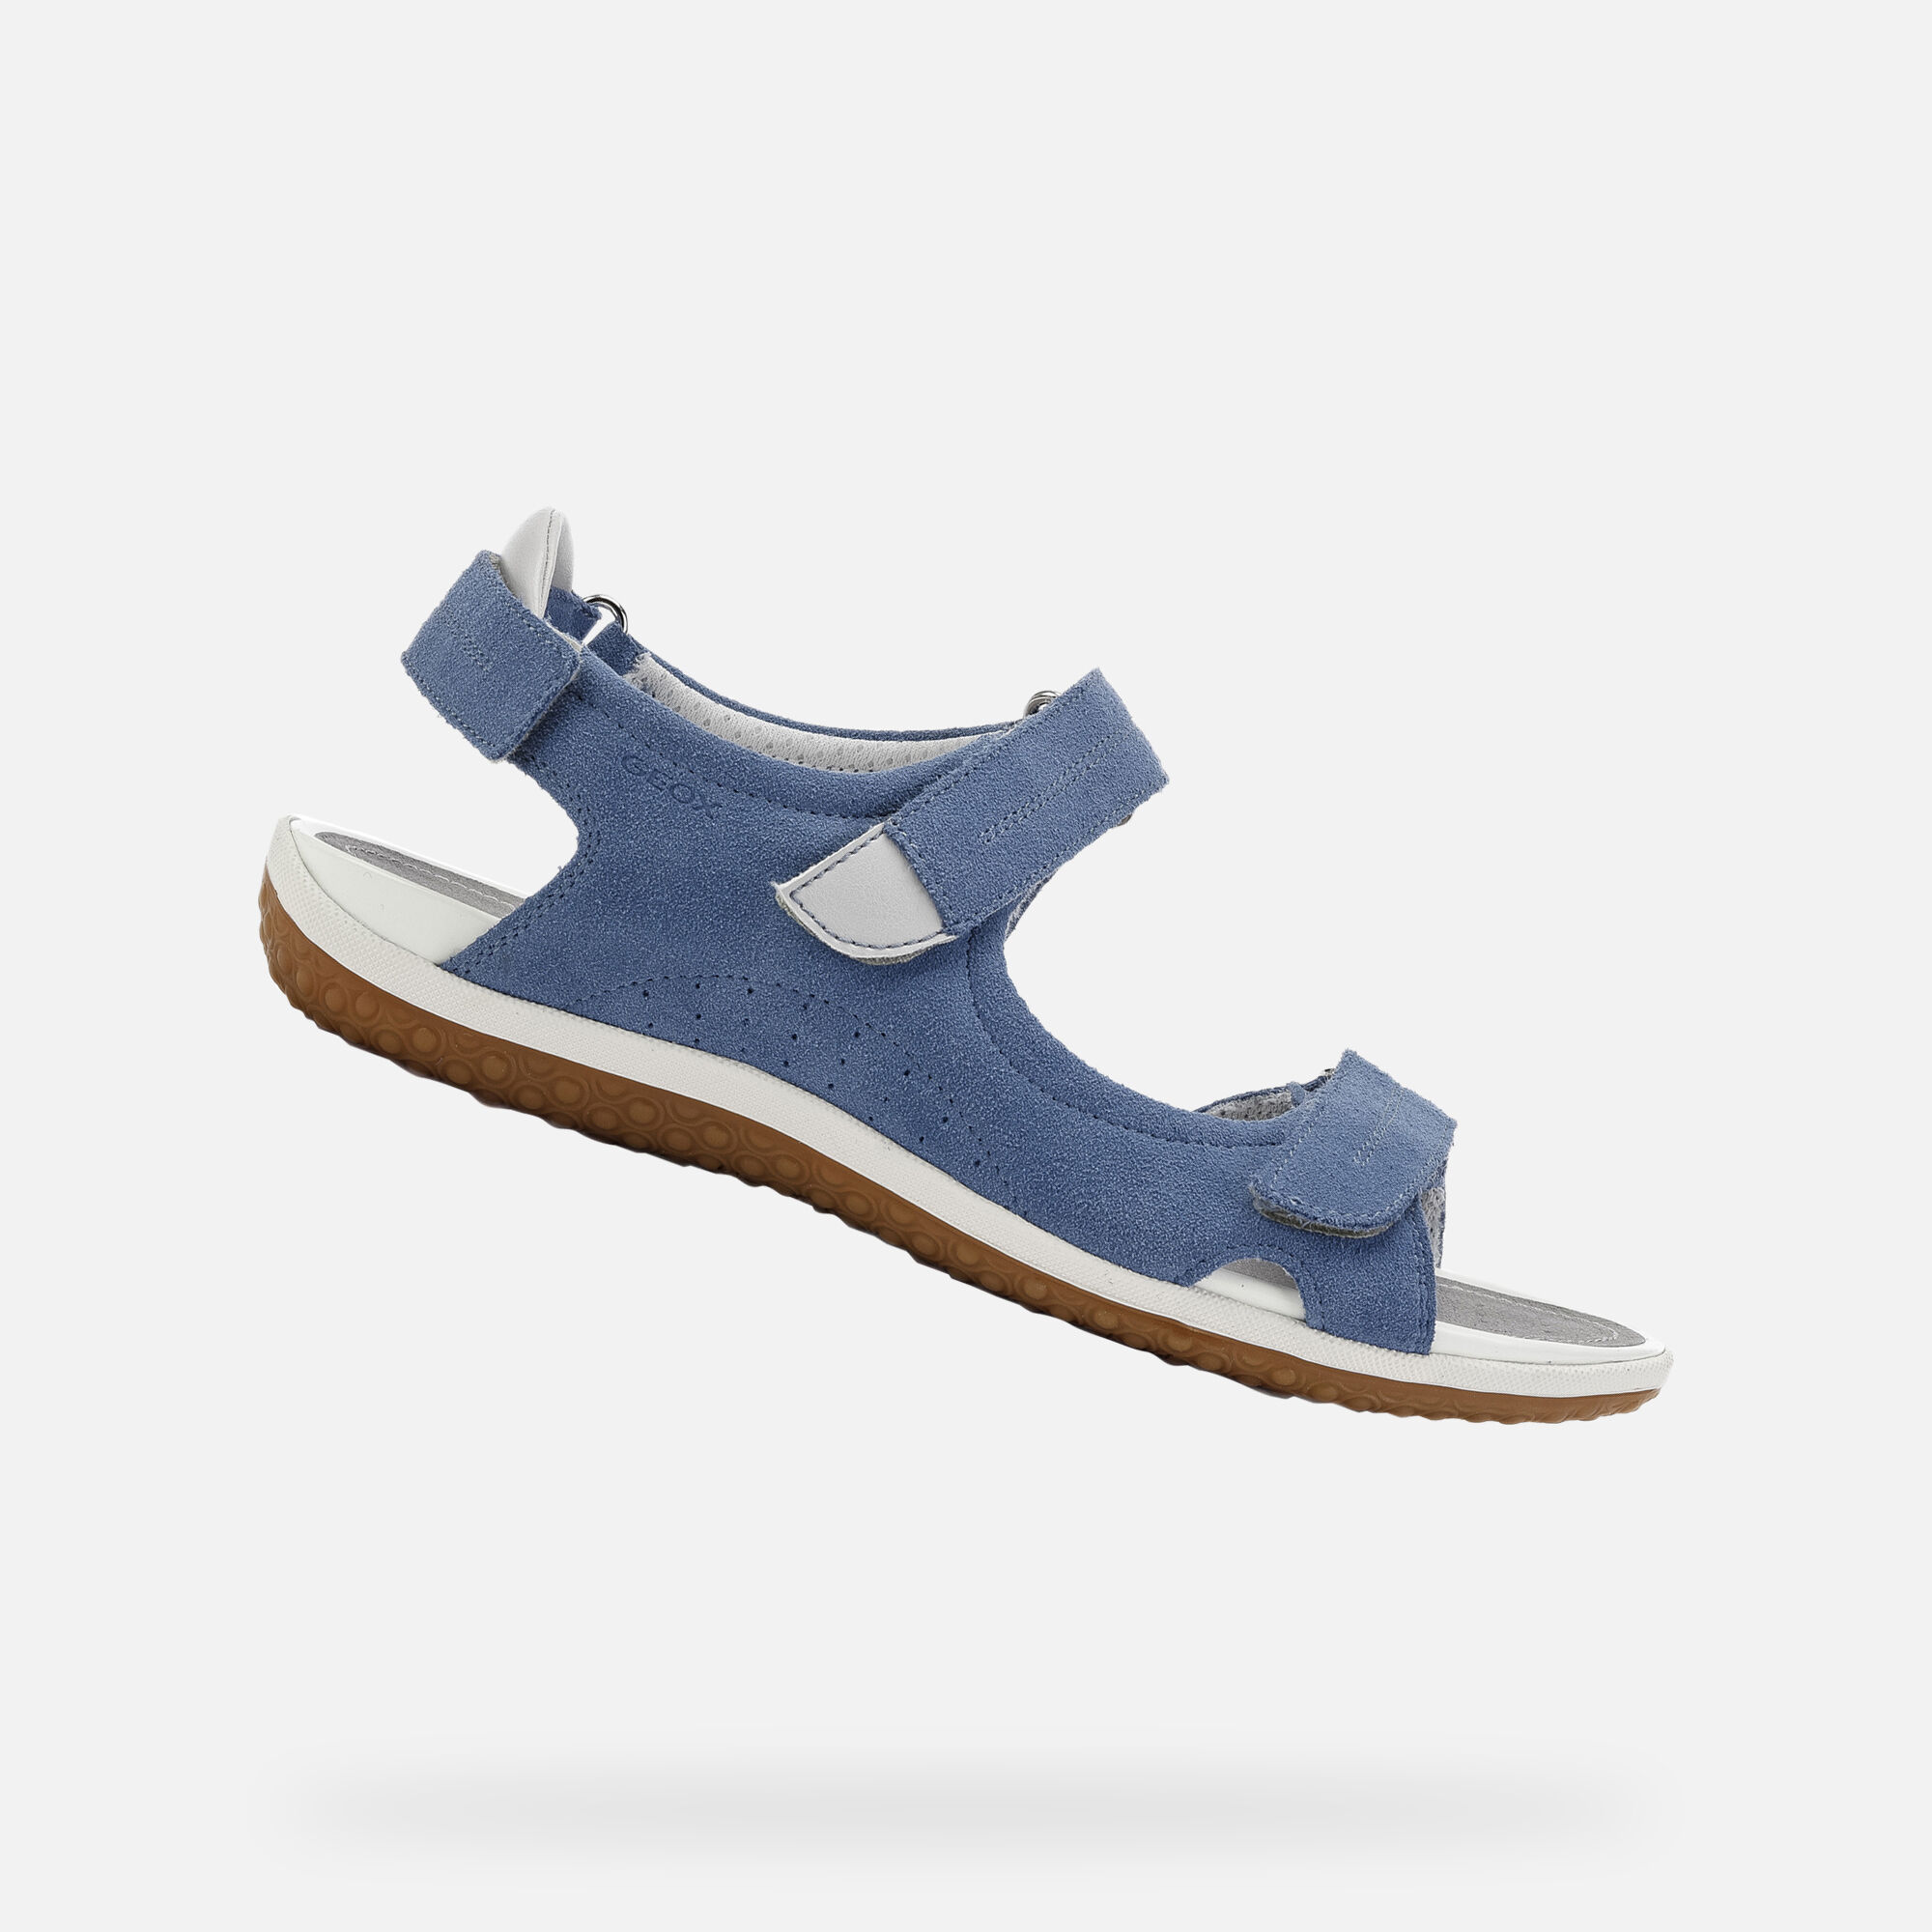 geox sale shoes Online Here, geox Girl Sandals SANDALE